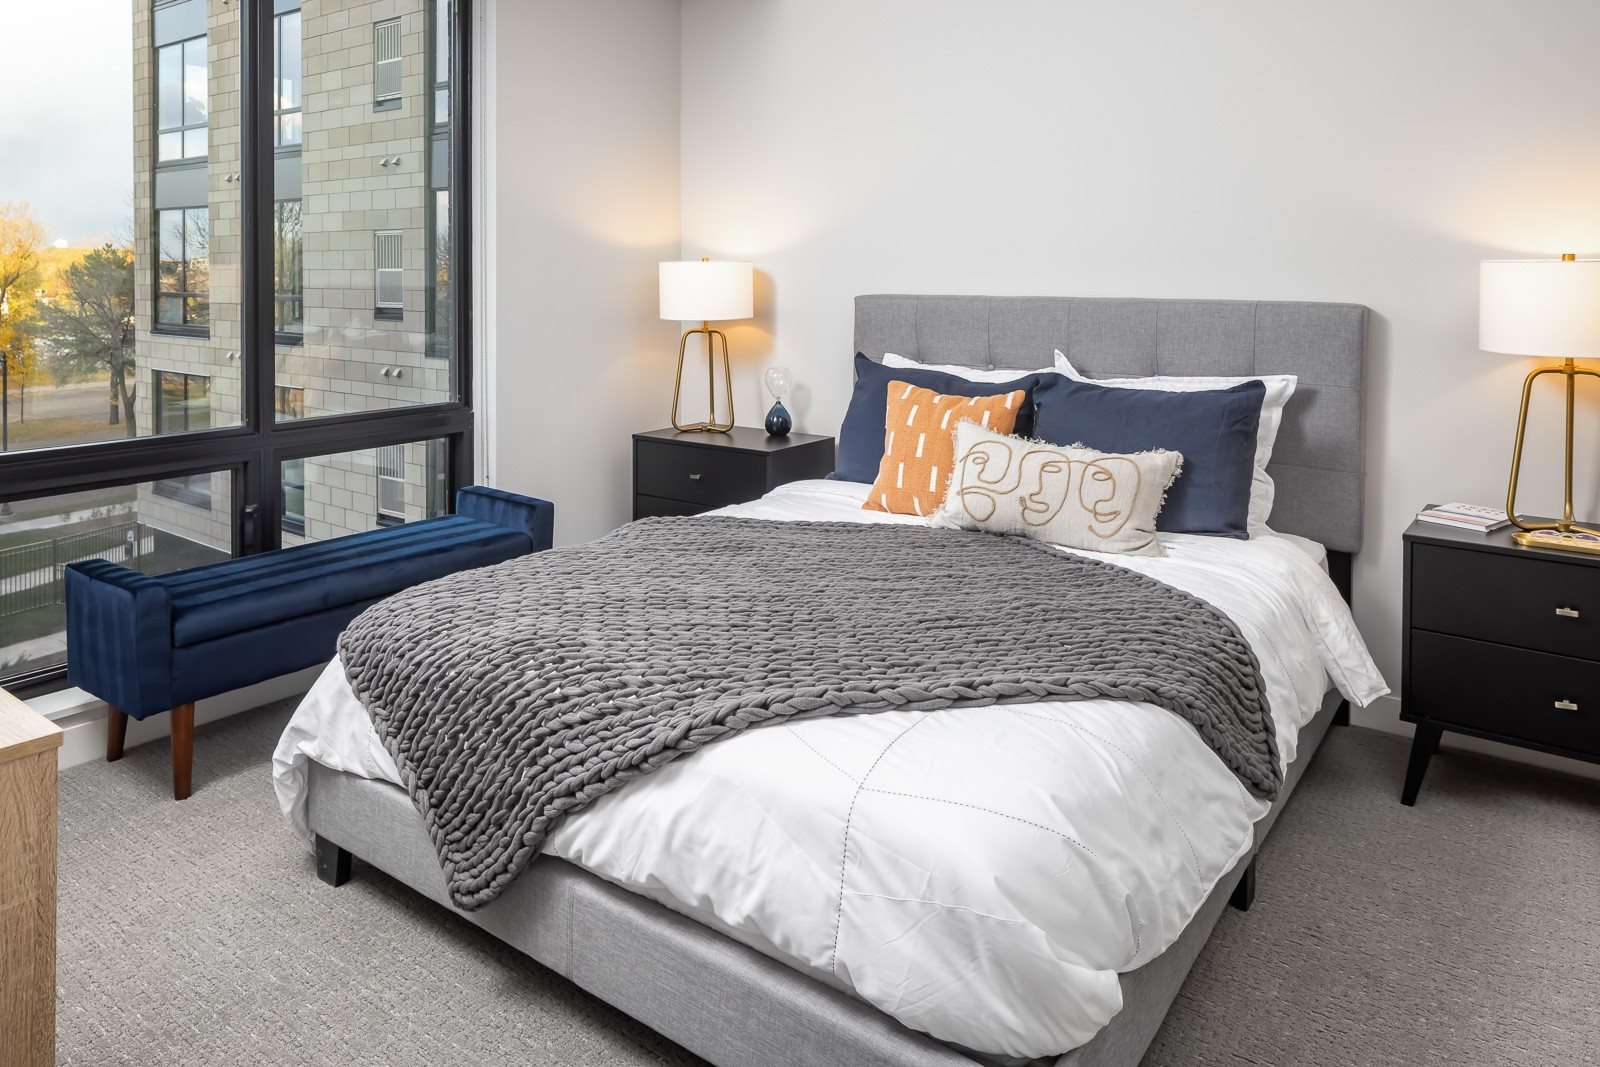 Spacious bedroom with large windows overlooking river in one bedroom apartment